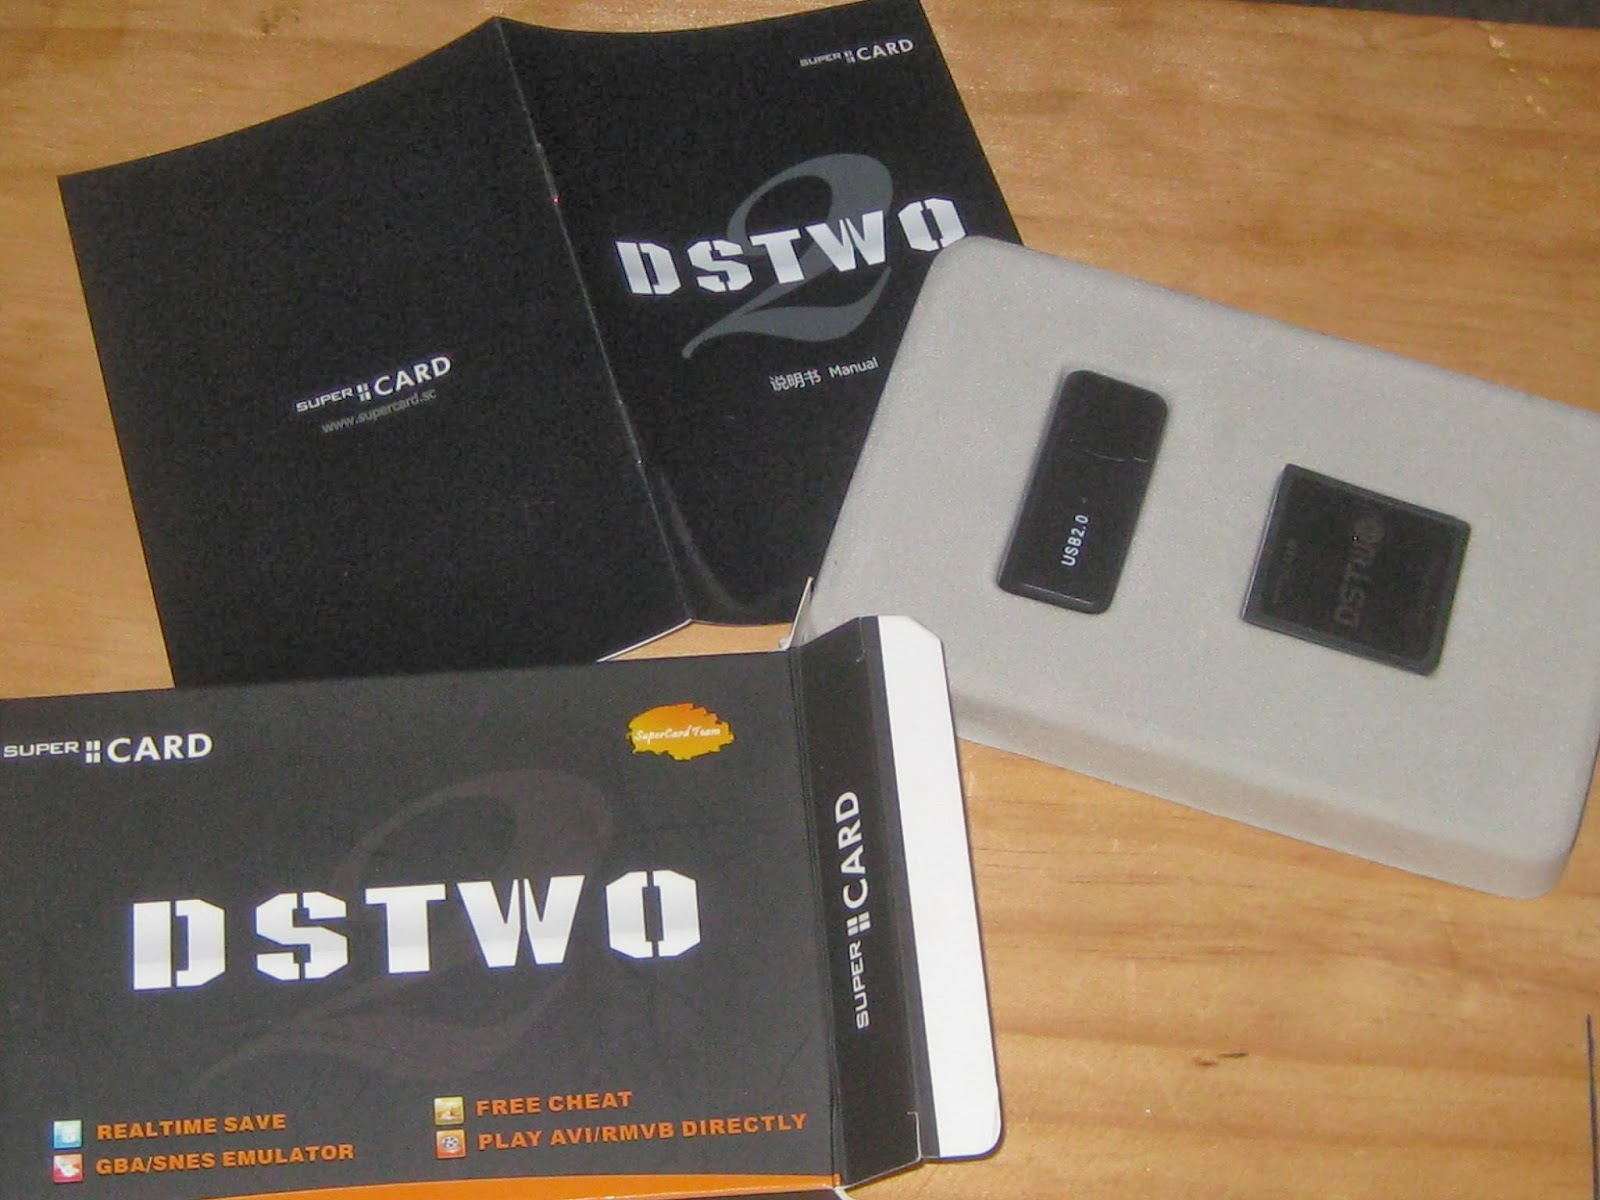 http://shortcircuitprojects.blogspot.com/2014/03/my-dstwo-flashcart-arived.html